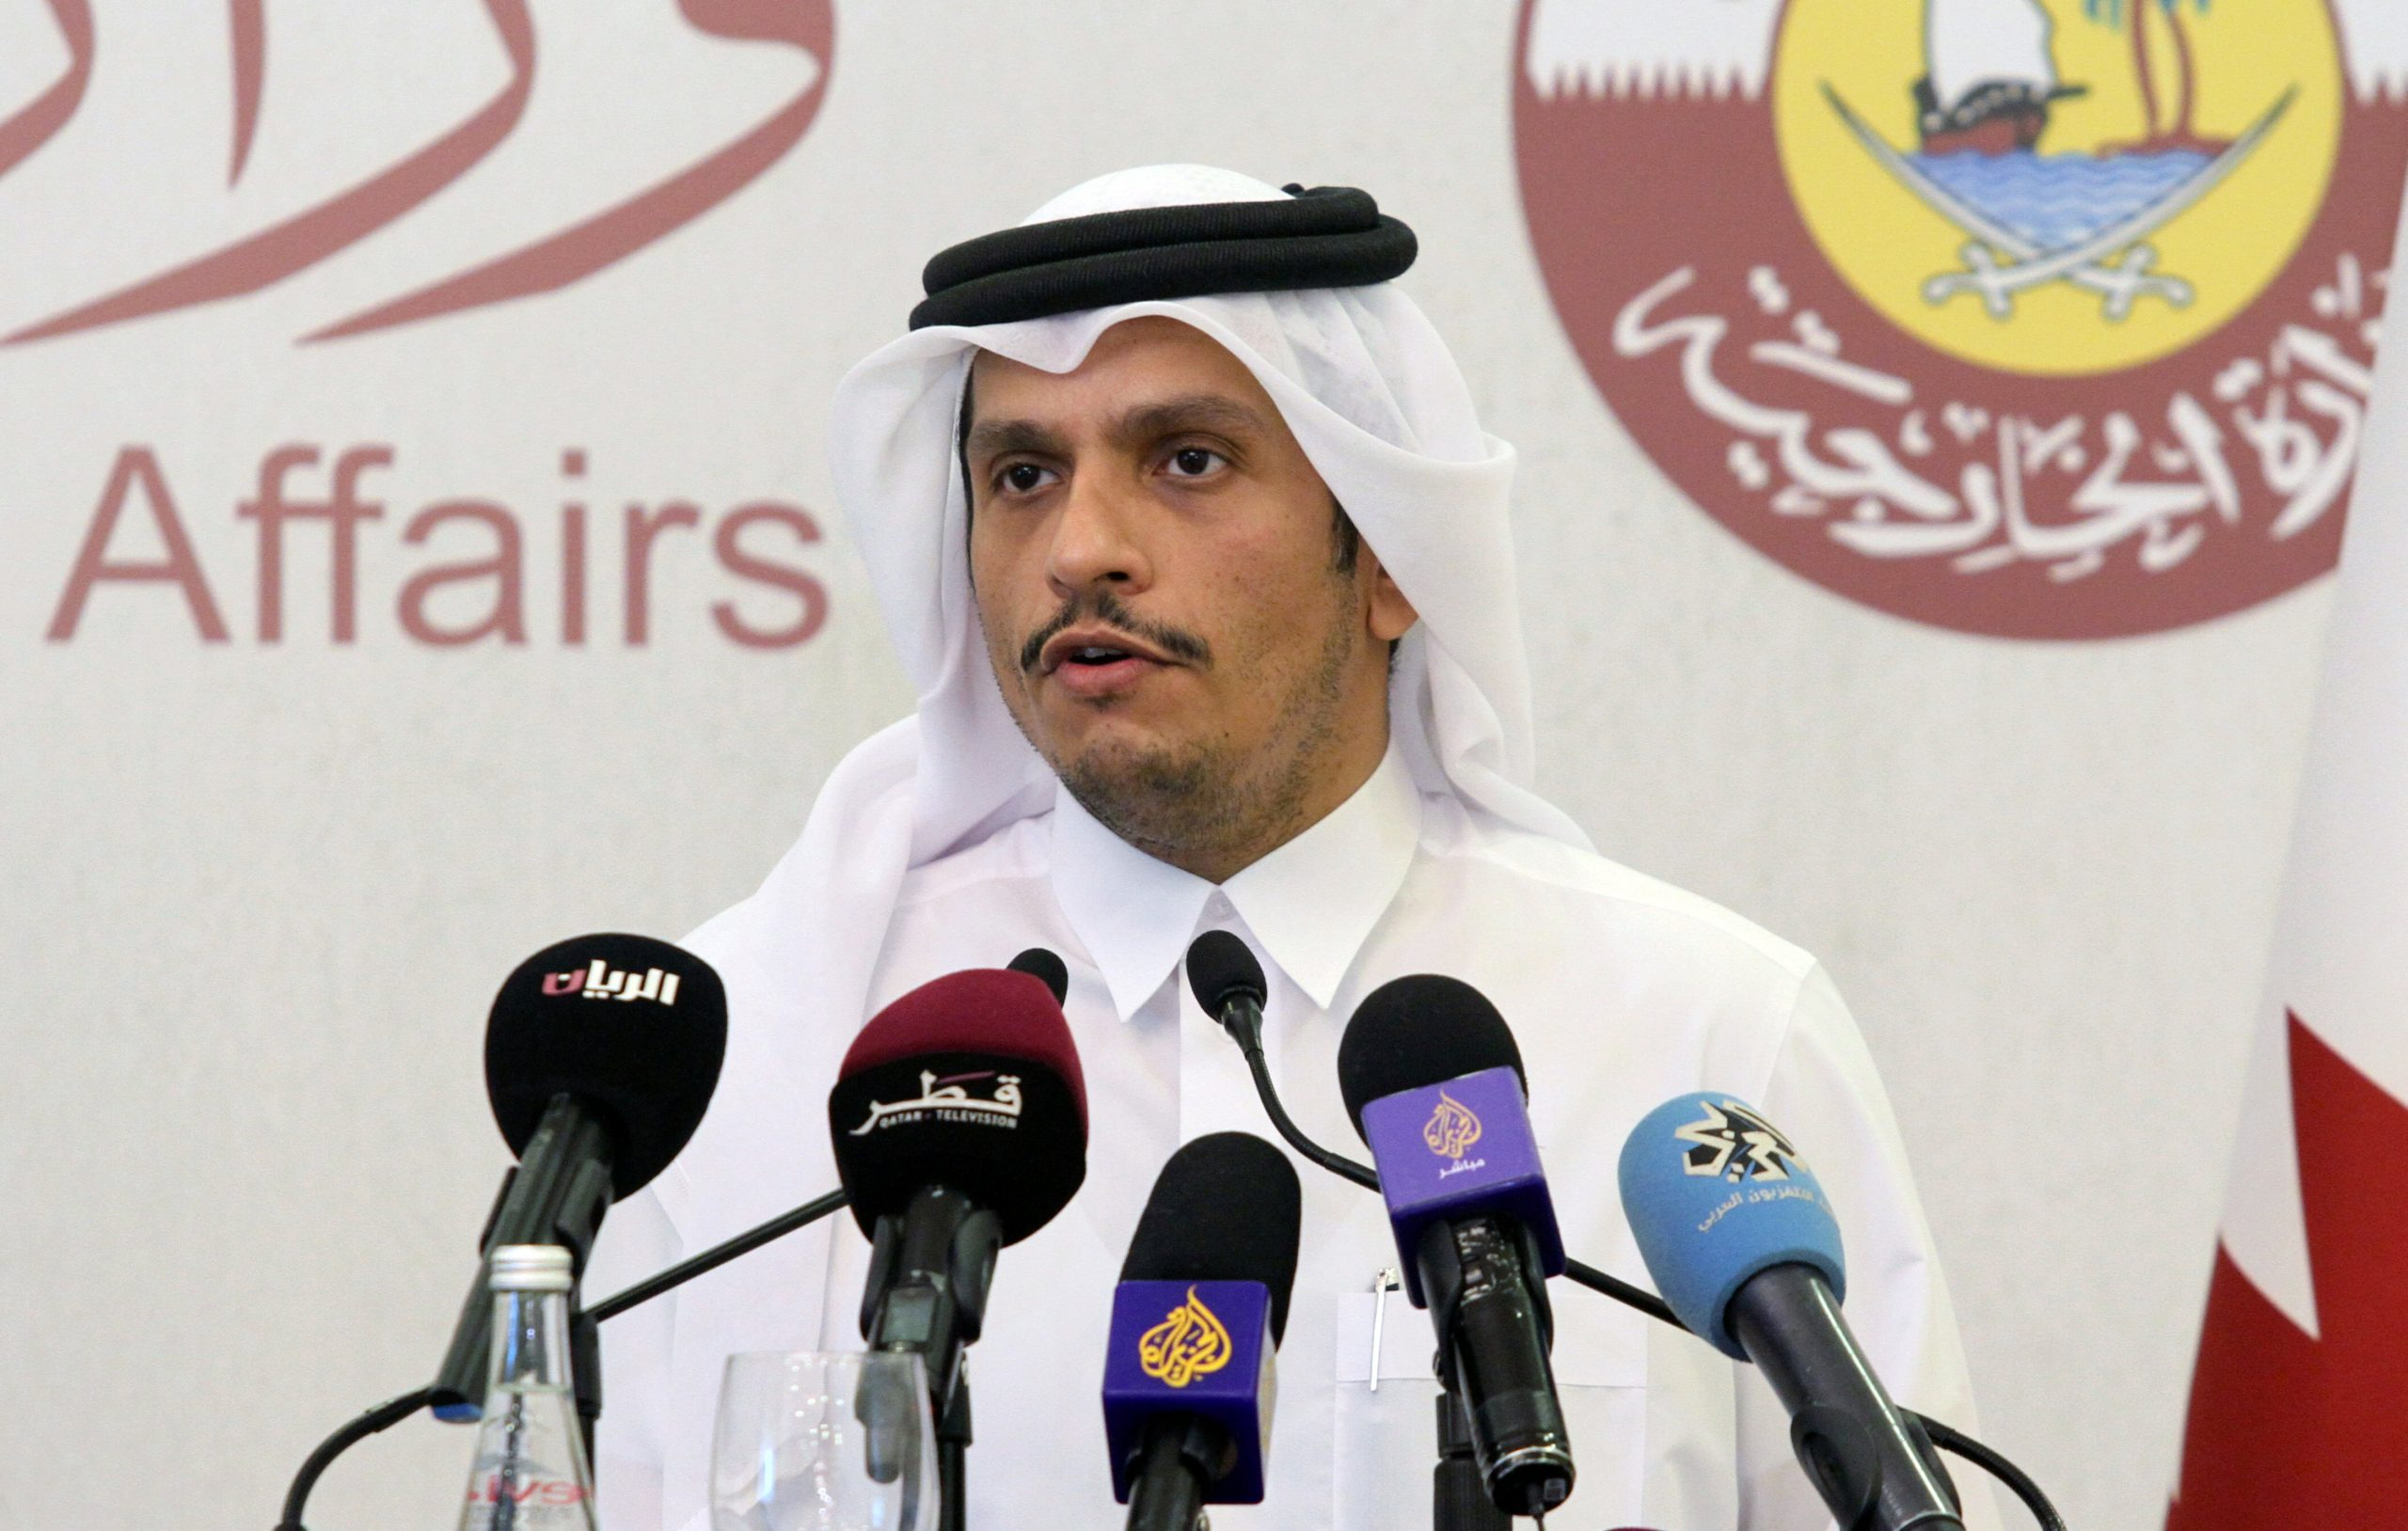 Political disputes stand in the way of achieving the interests of GCC people: FM